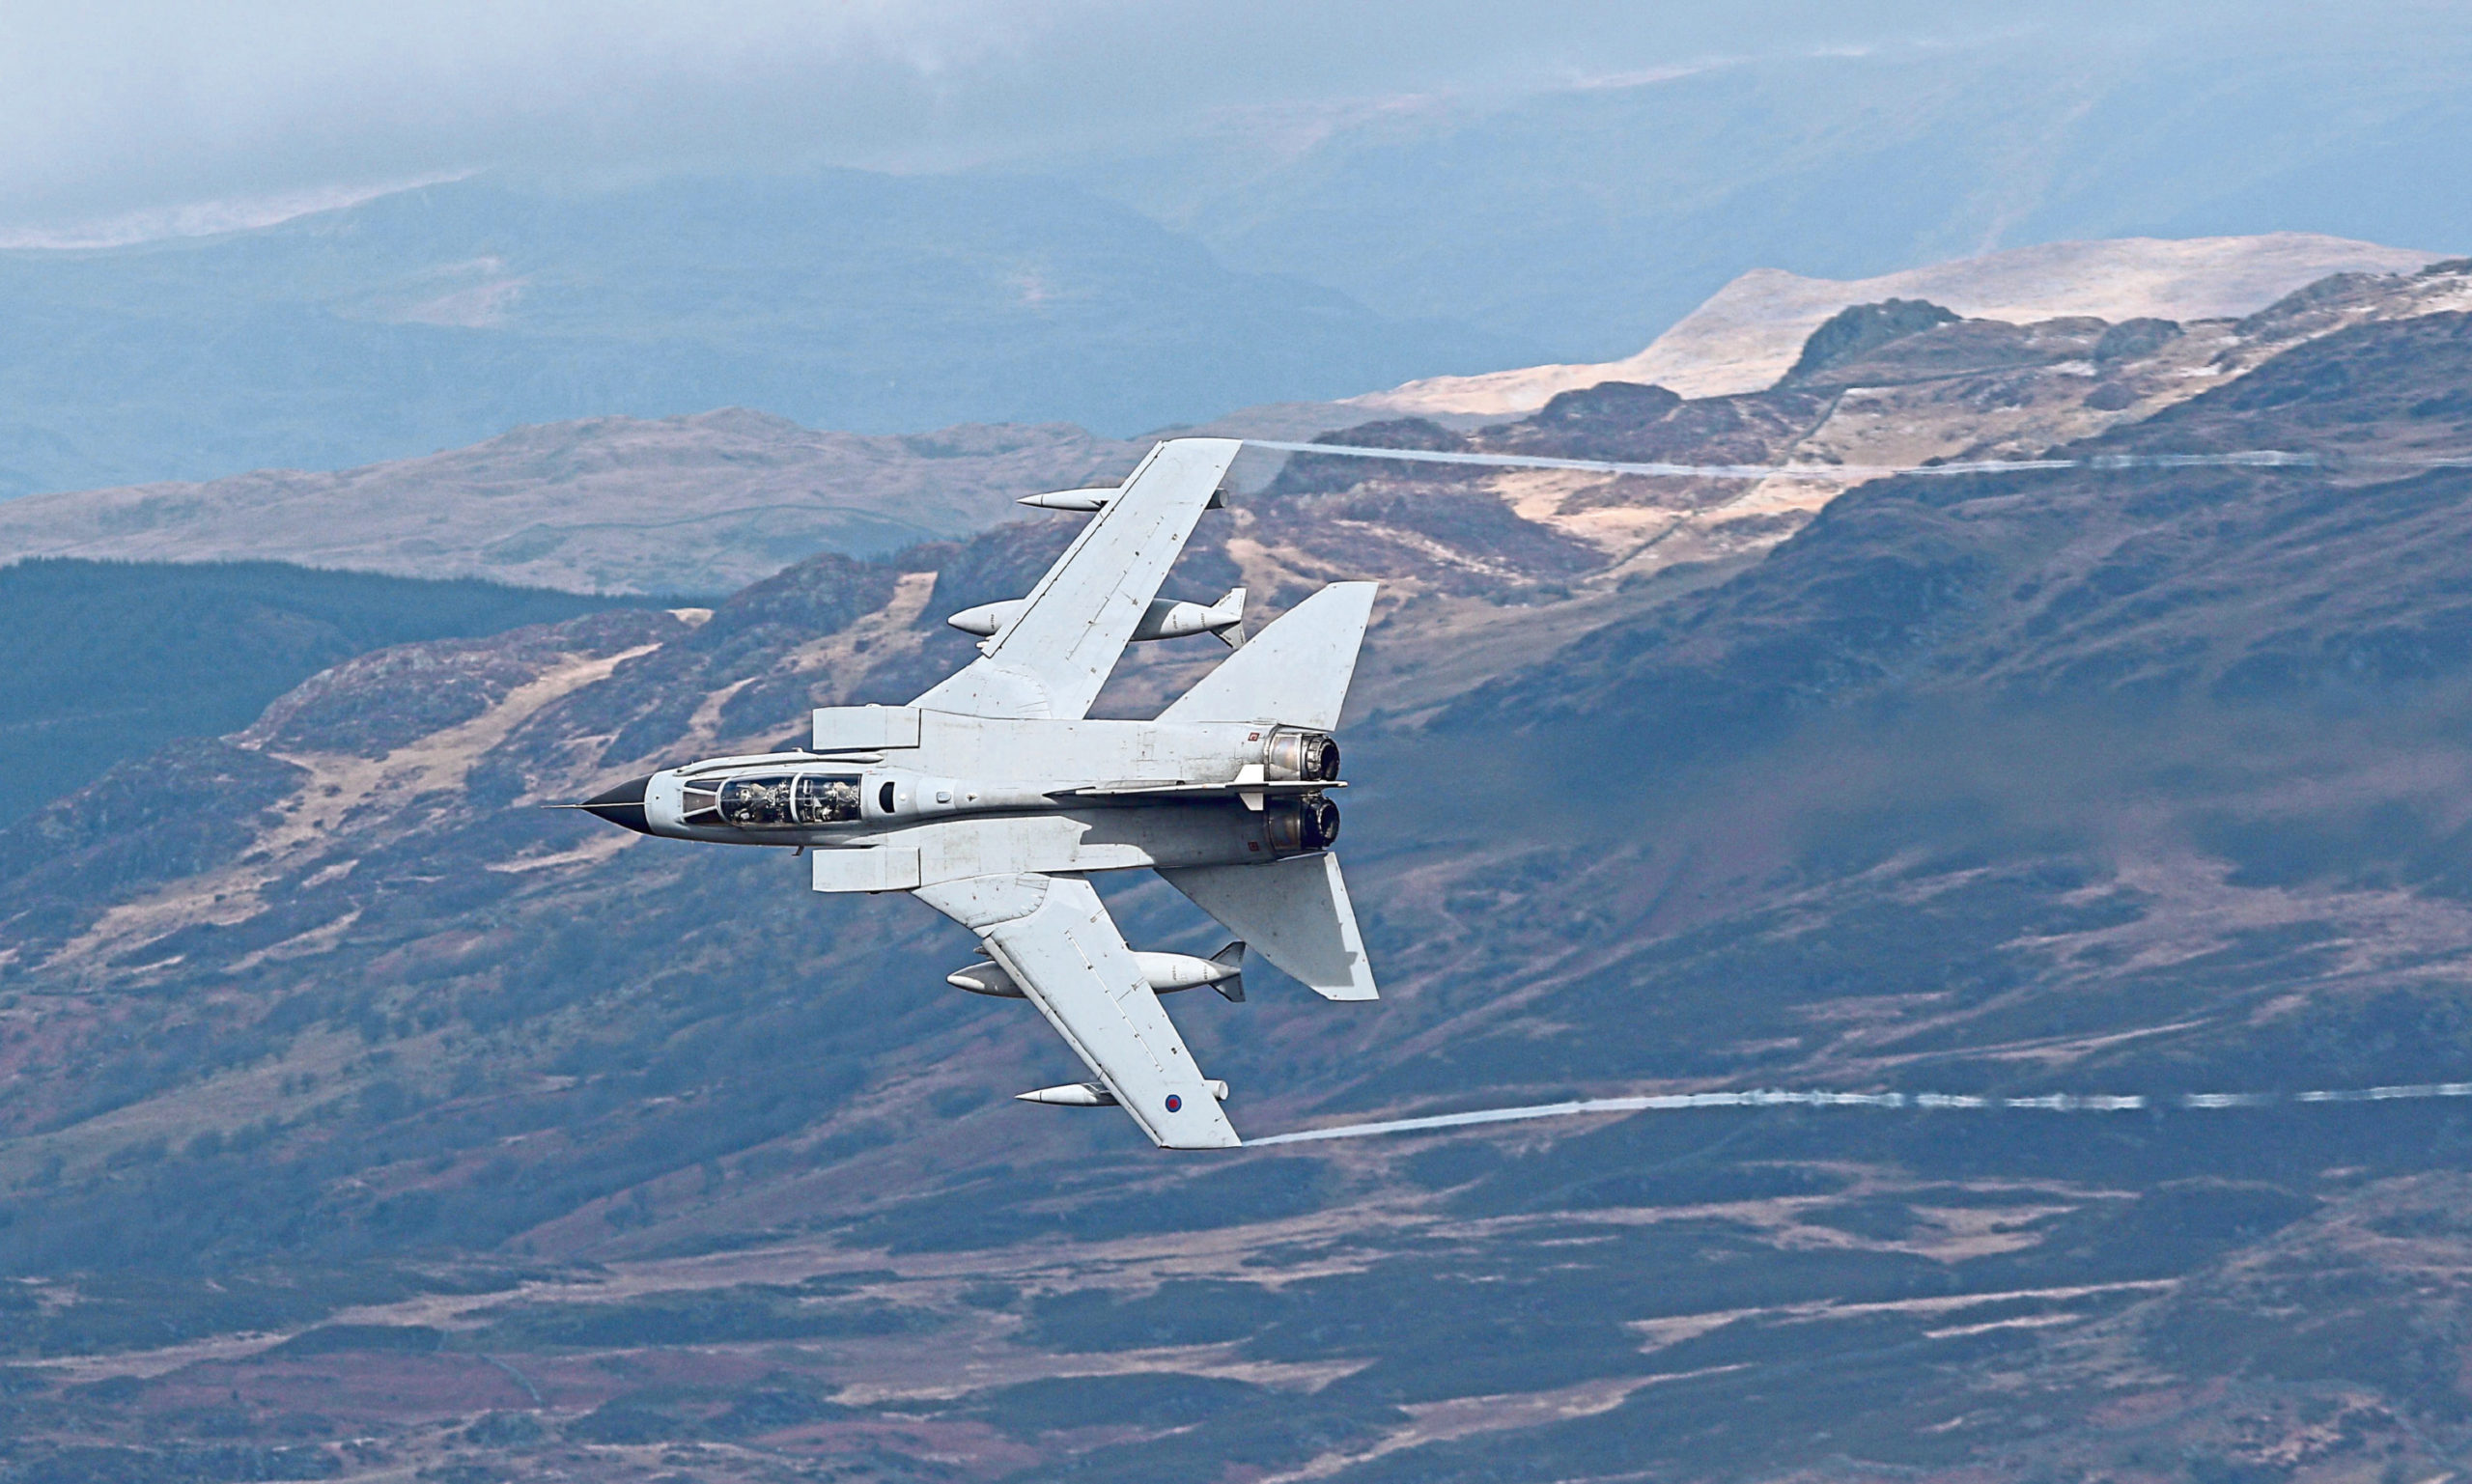 A Panavia Tornado GR4 during a training exercise.